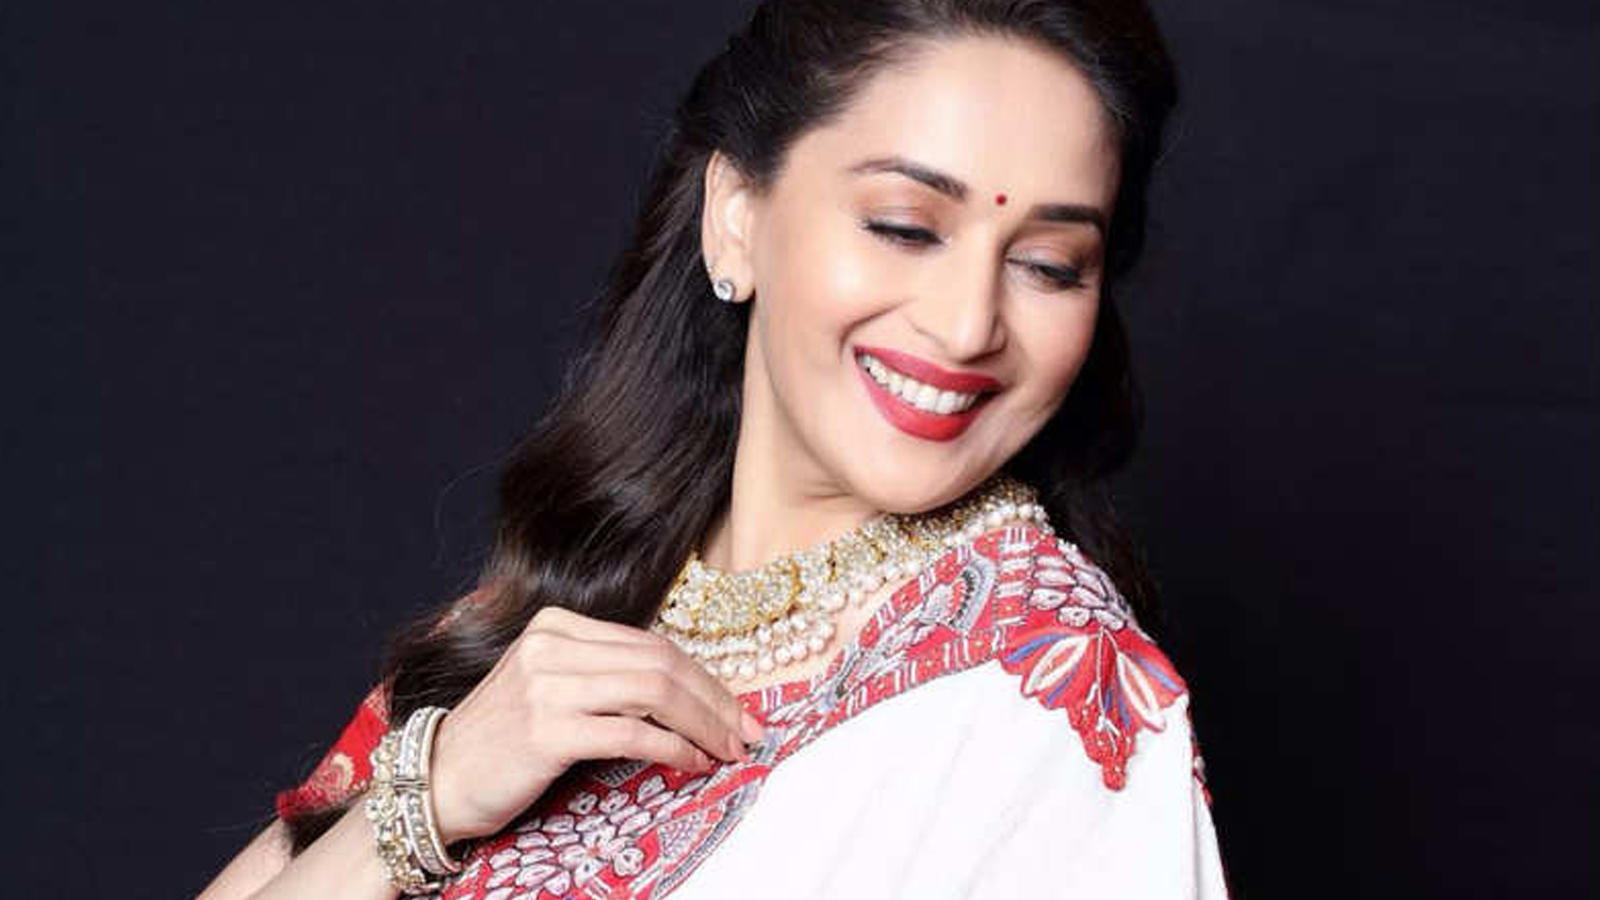 31 unknown facts about birthday girl Madhuri Dixit